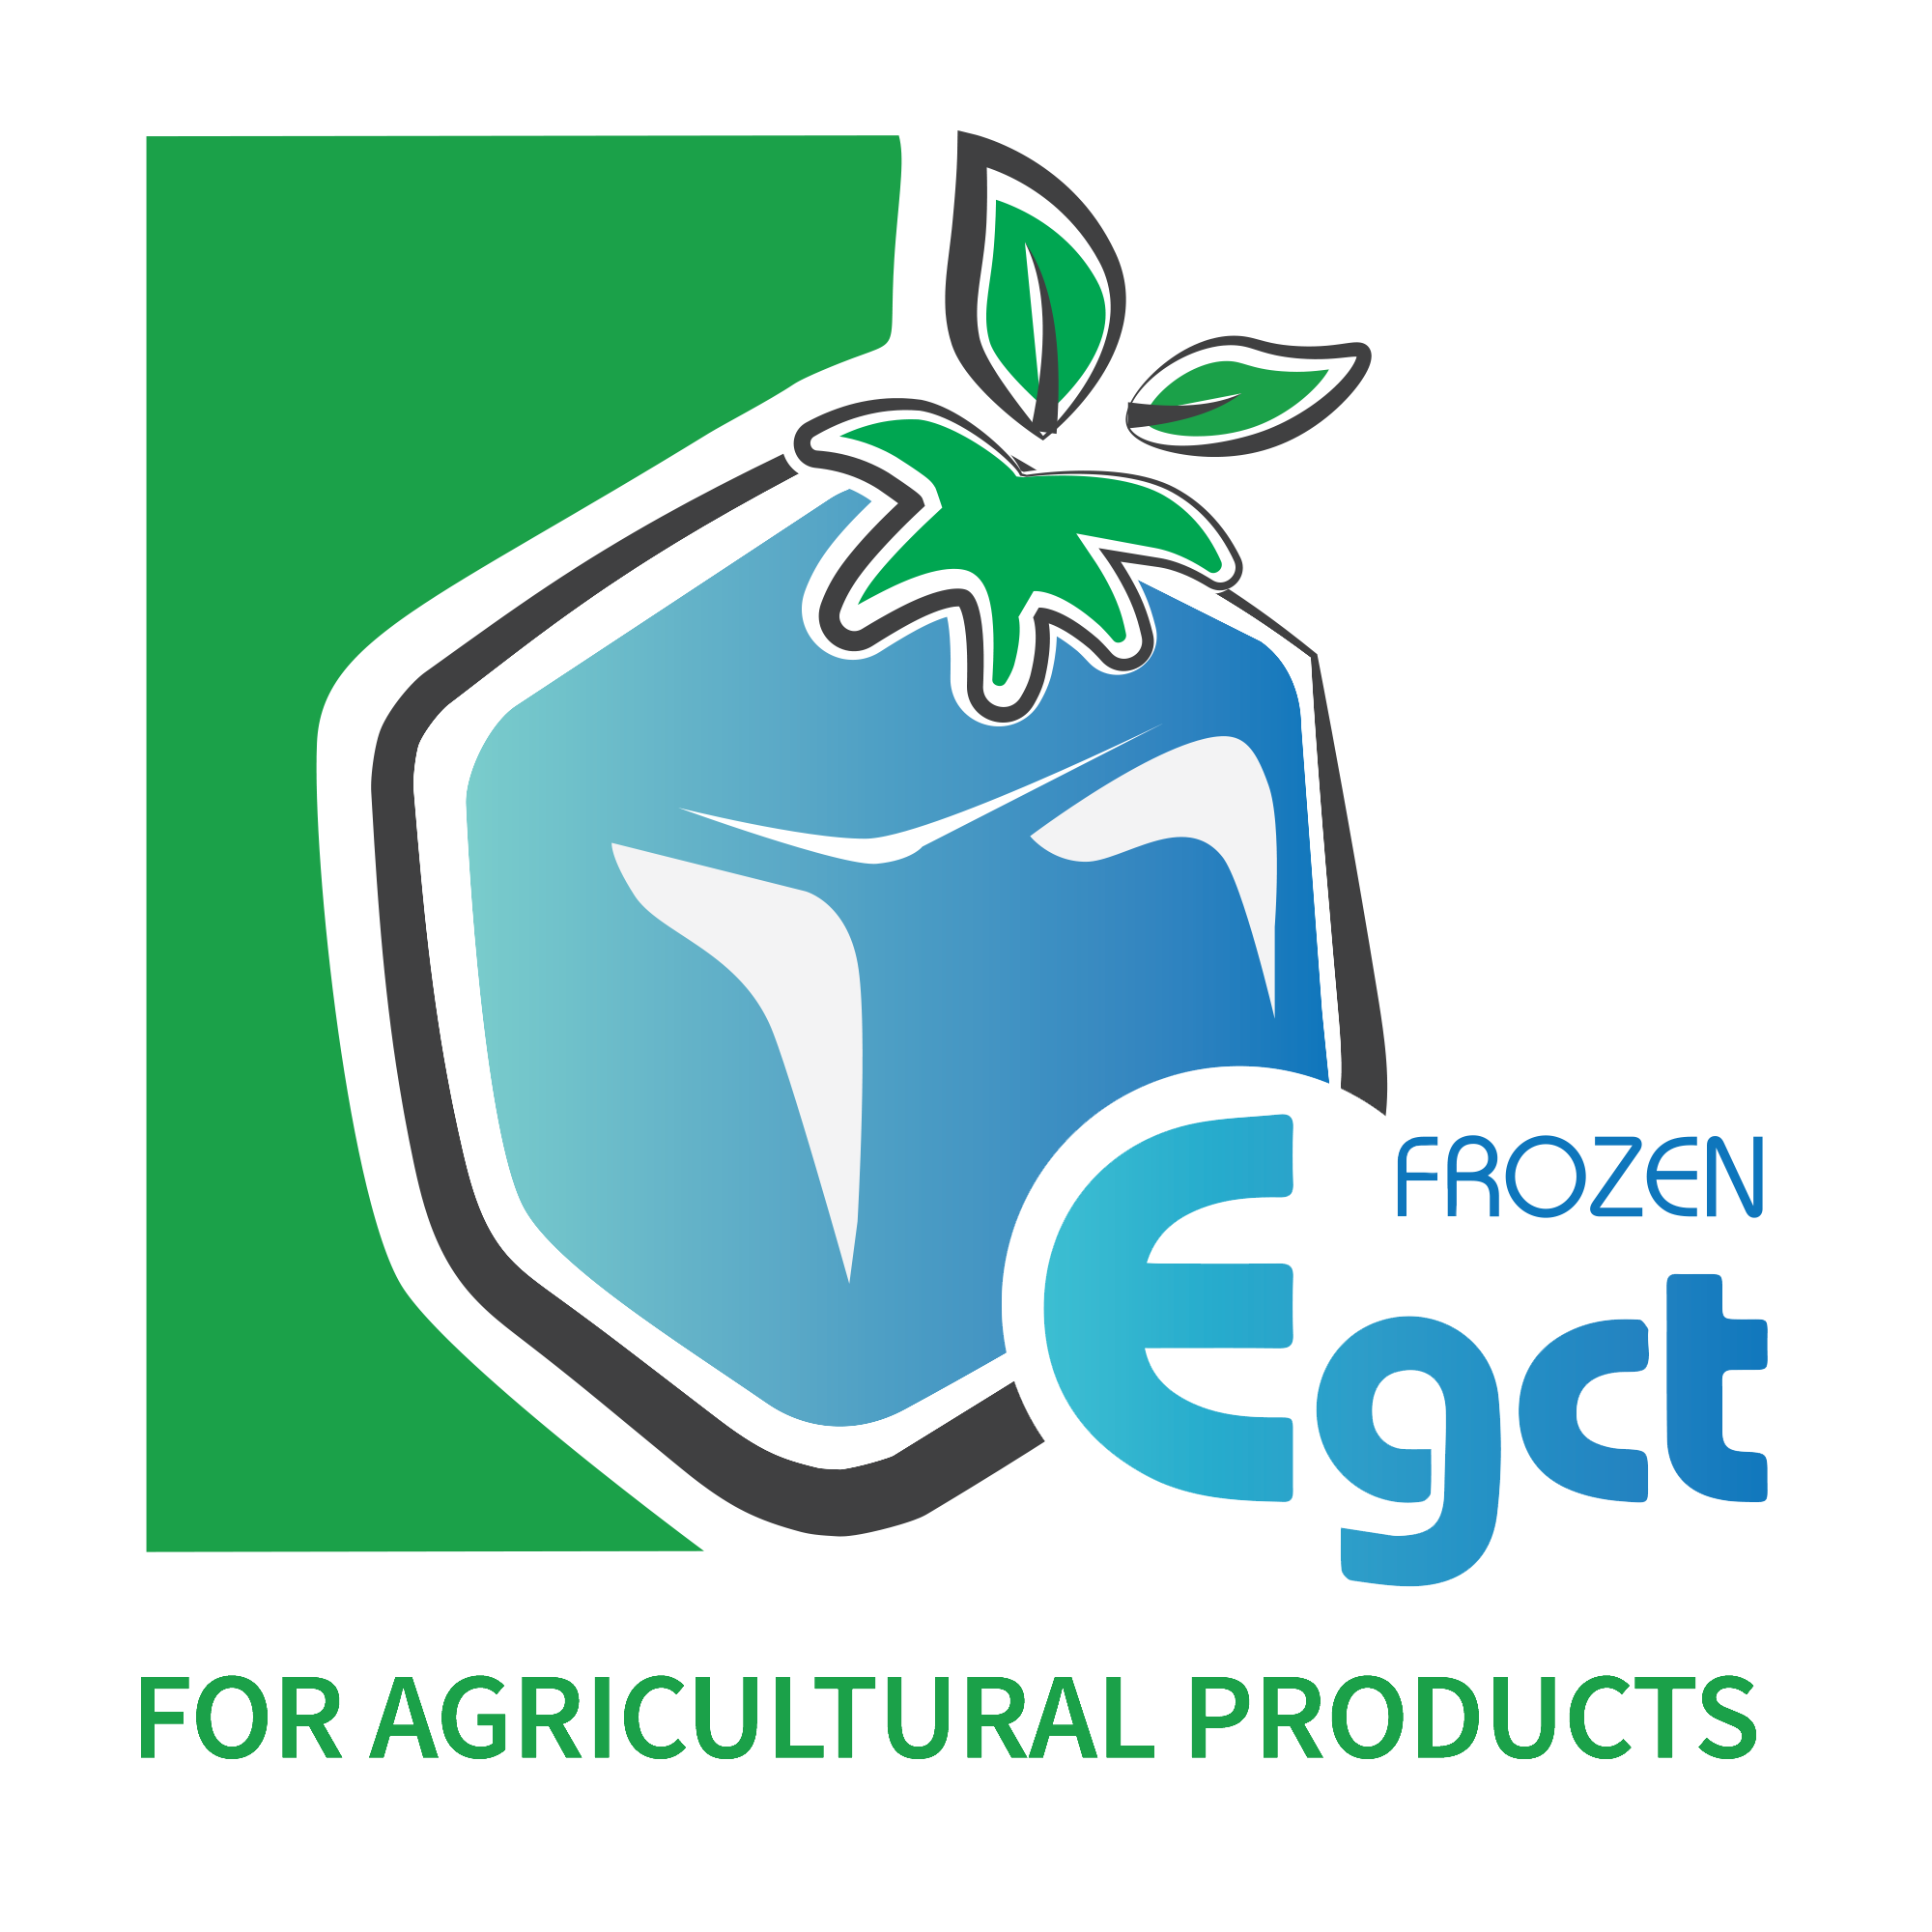 EGCT Frozen Fruits